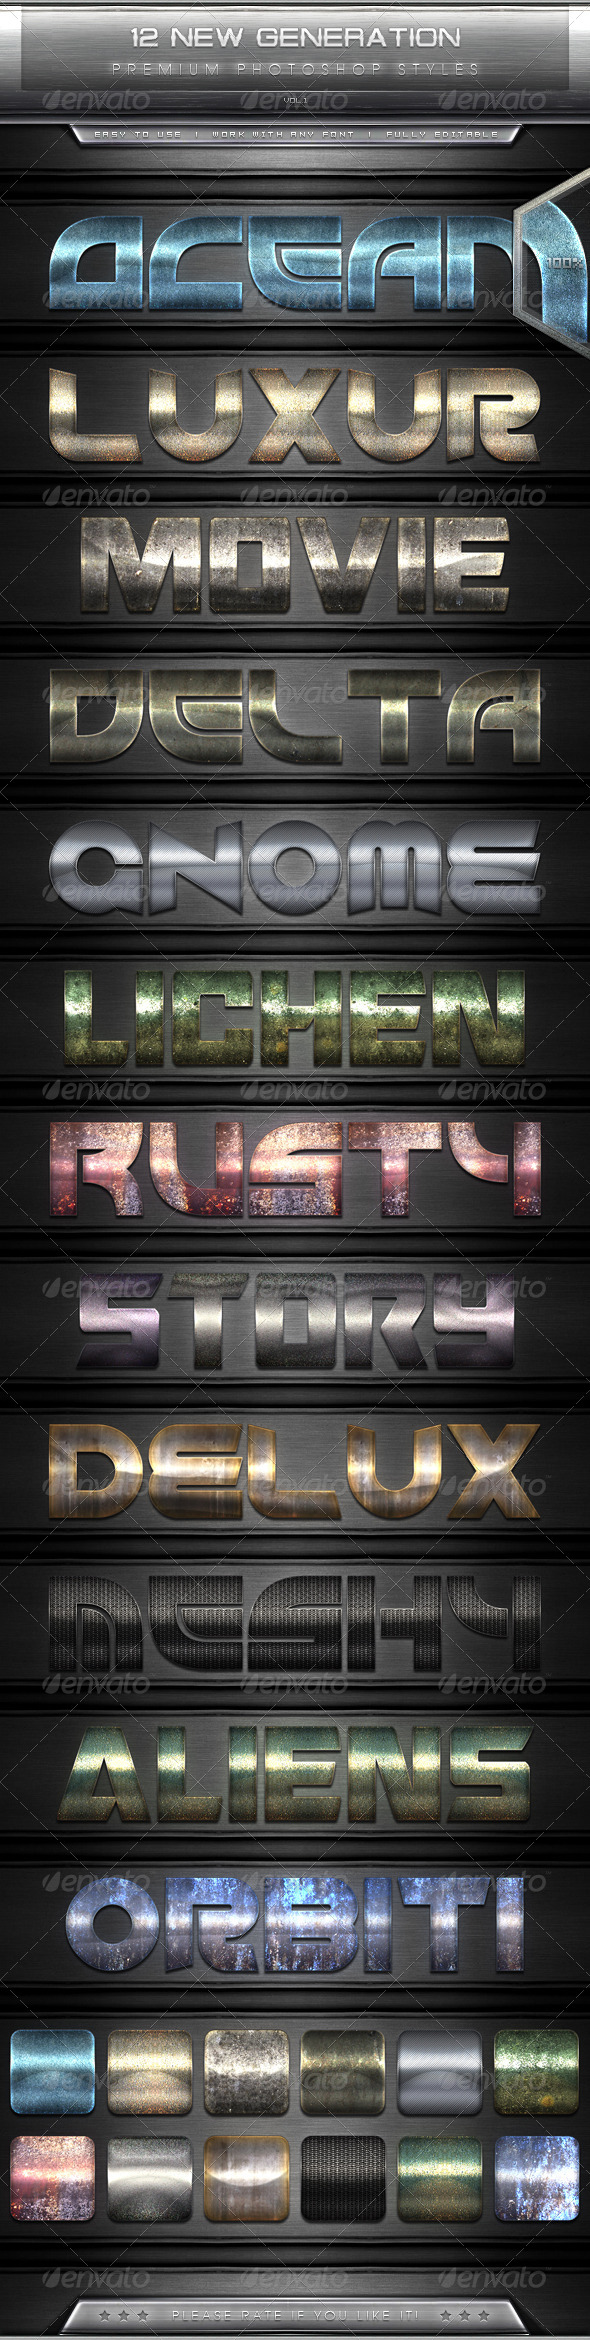 GraphicRiver 12 New Generation Text Effect Styles Vol.1 7630718